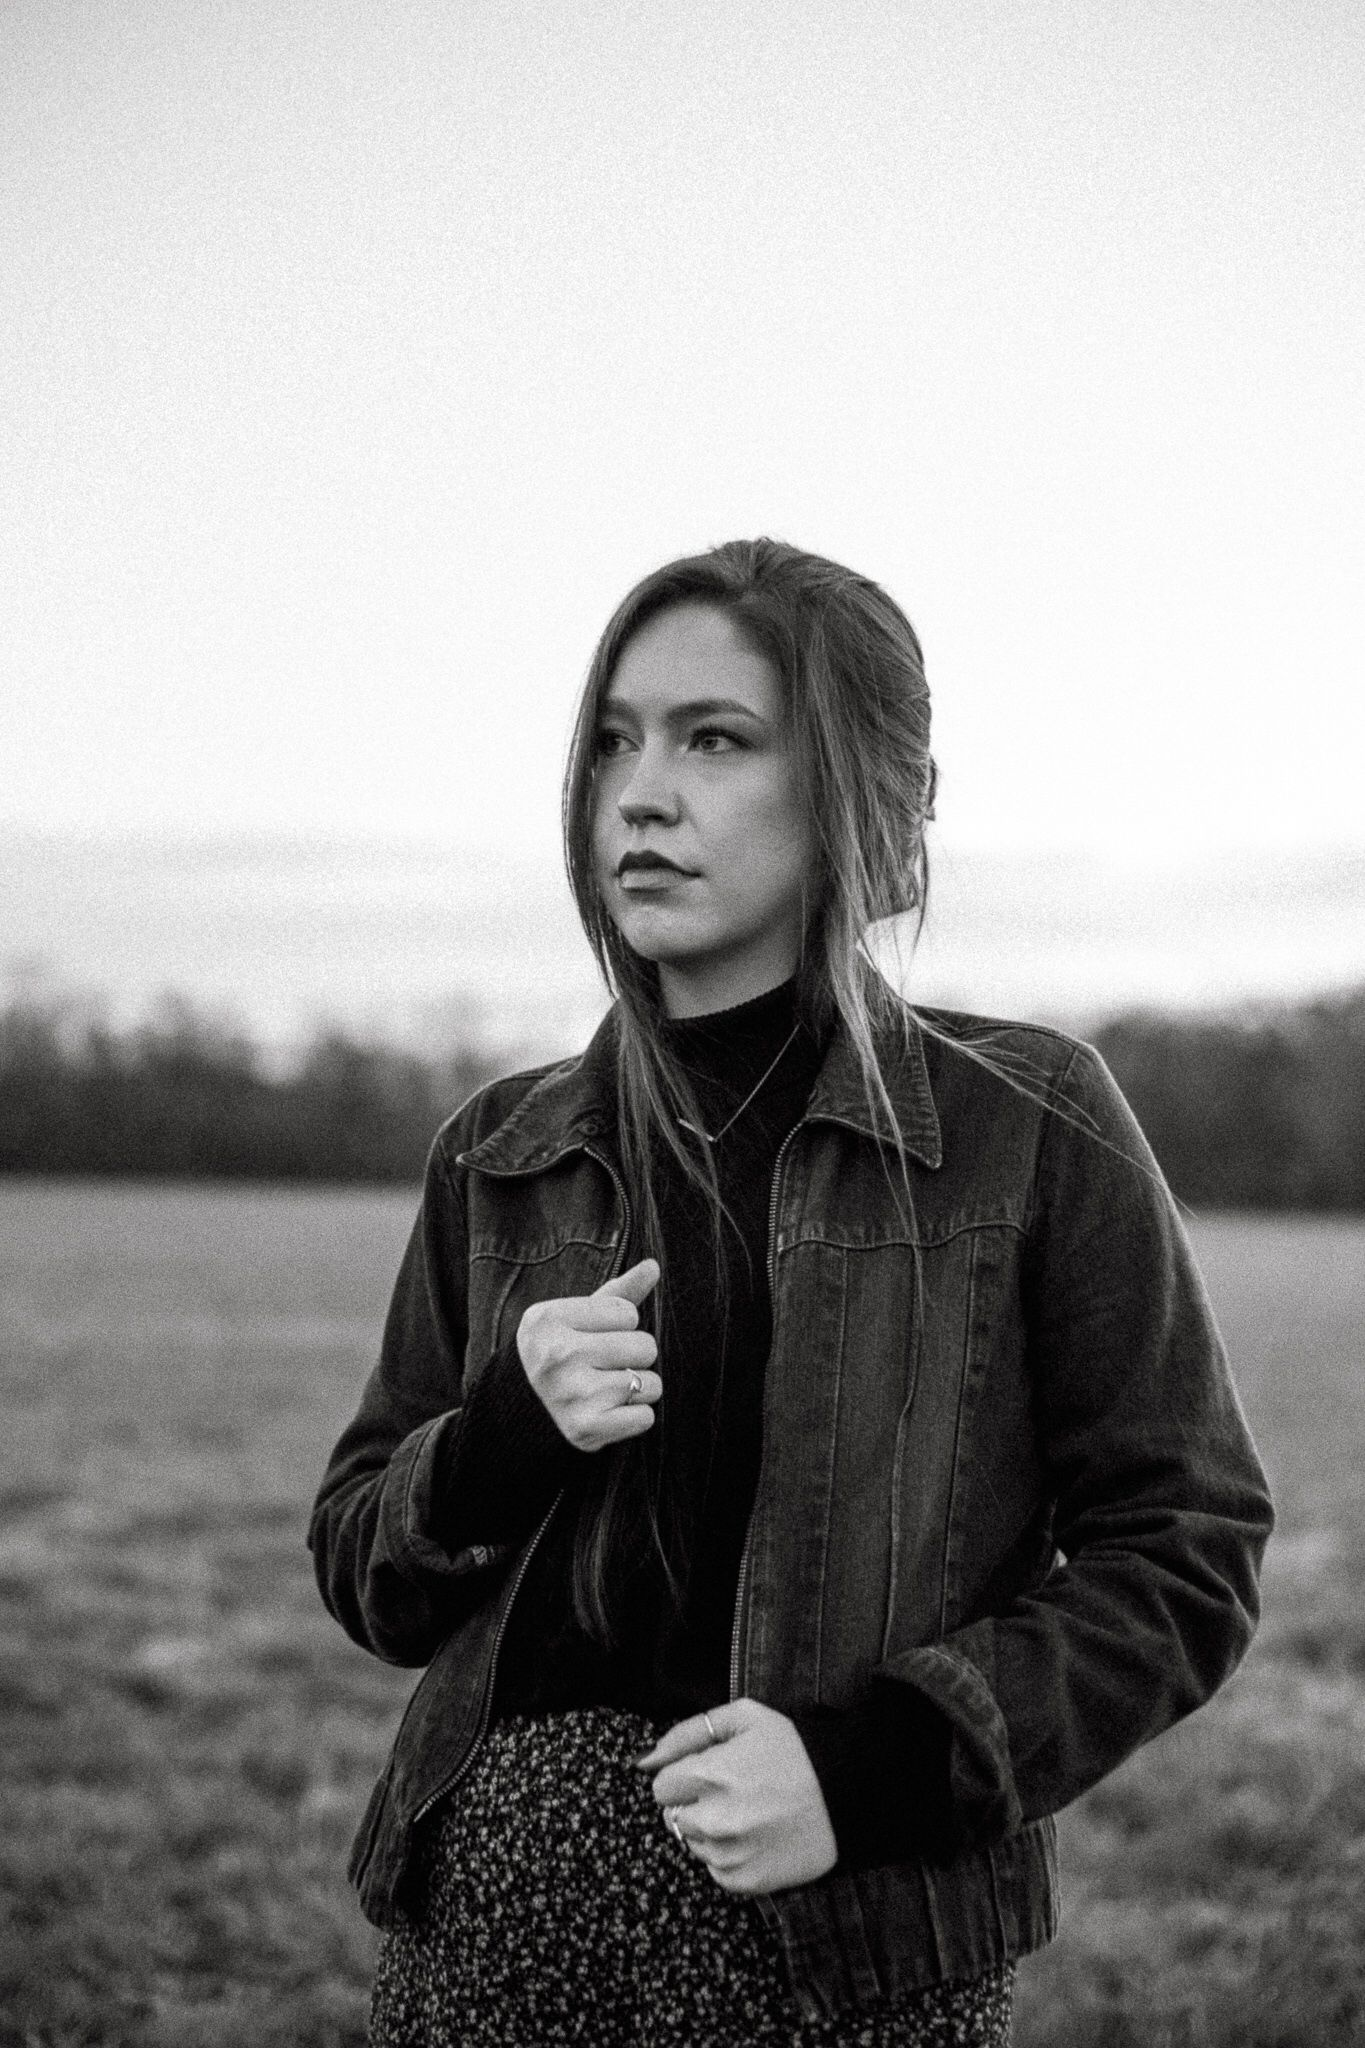 Black and white outdoor portrait by Rylee Paxton 2019